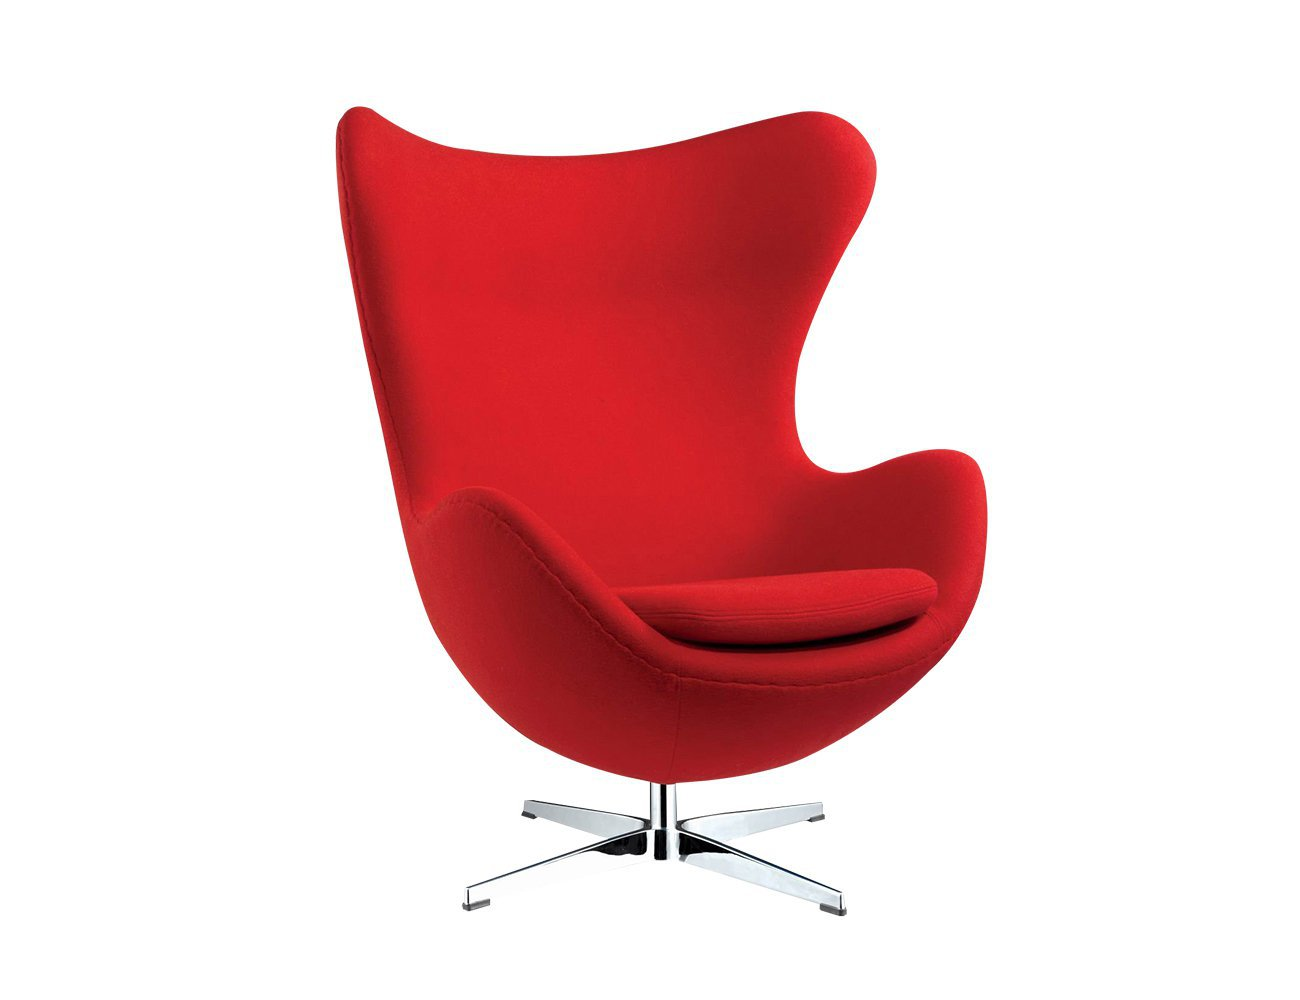 Replica Egg Chair - Red - Fabric